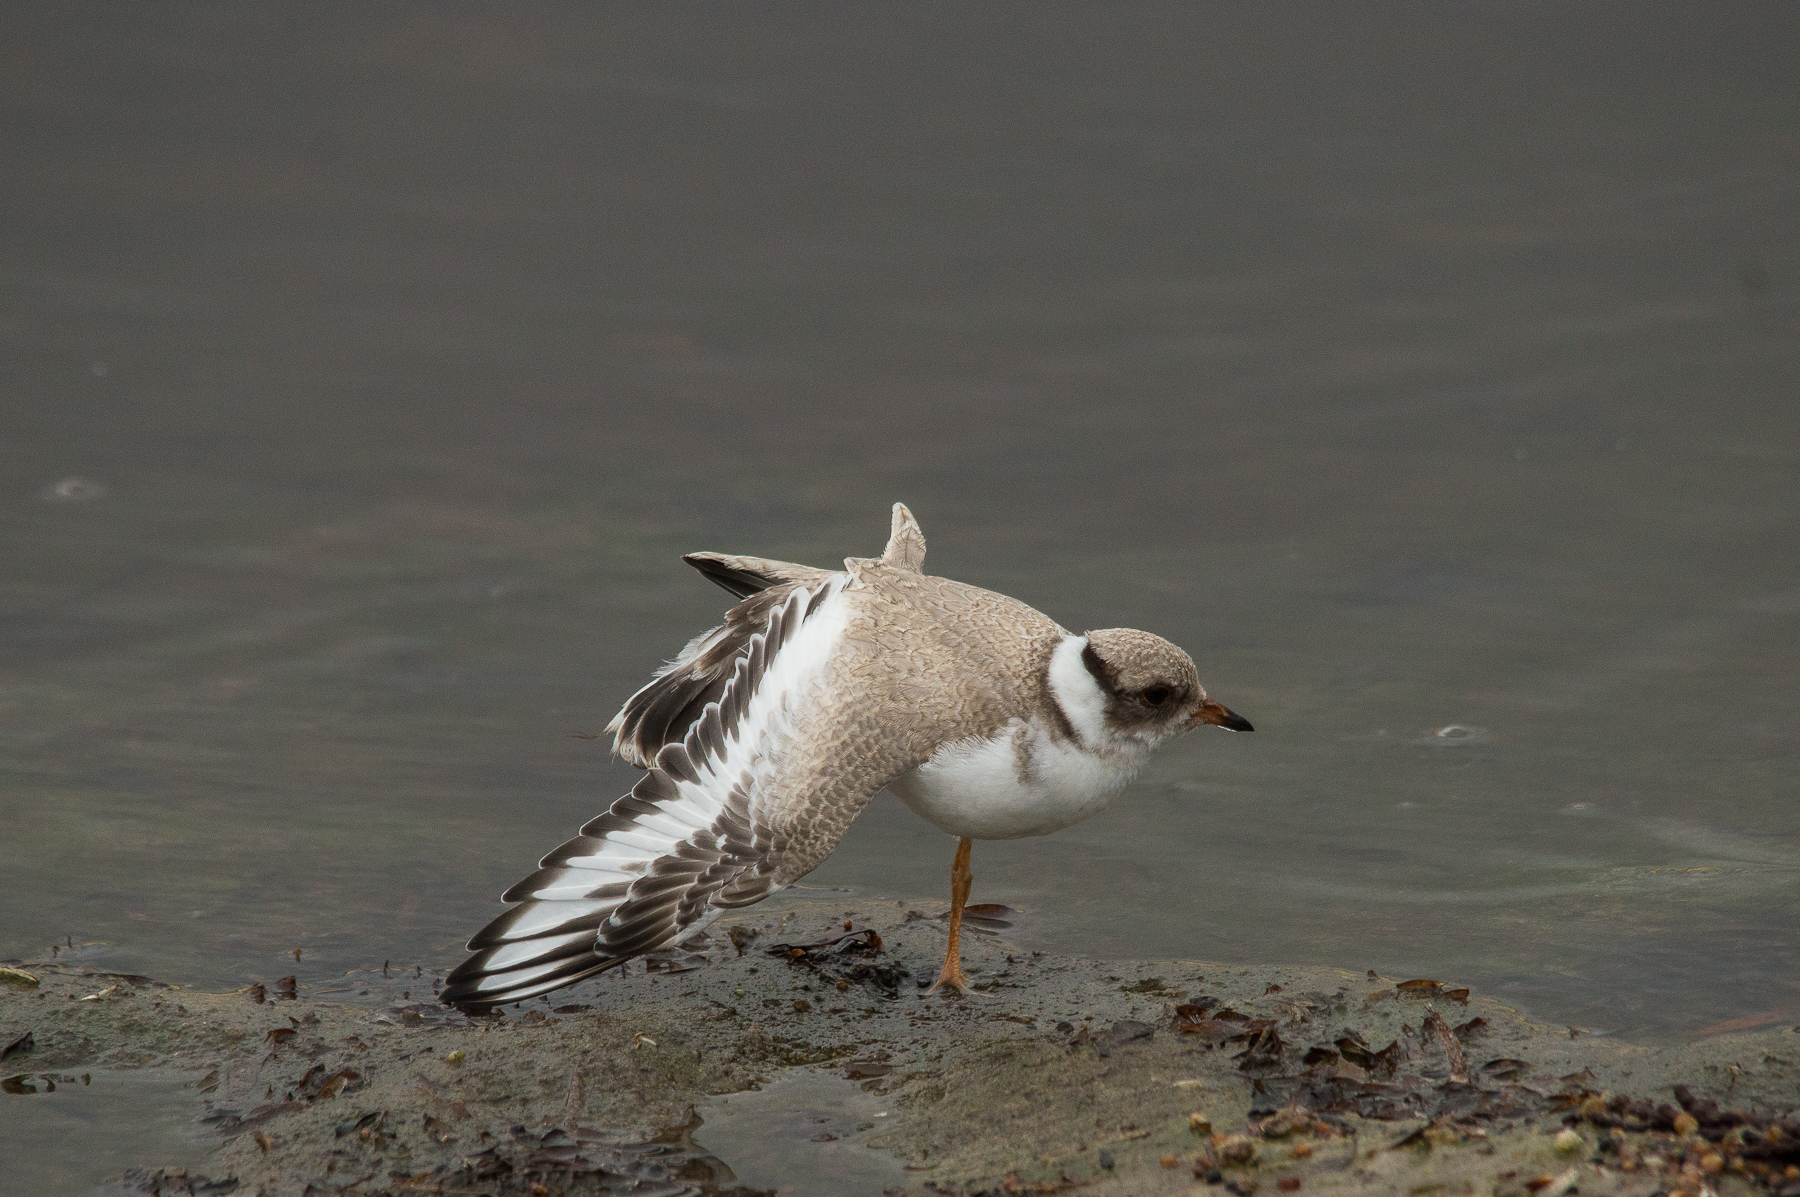 48-day old juvenile hooded plover. Photo: Kerri Bartley